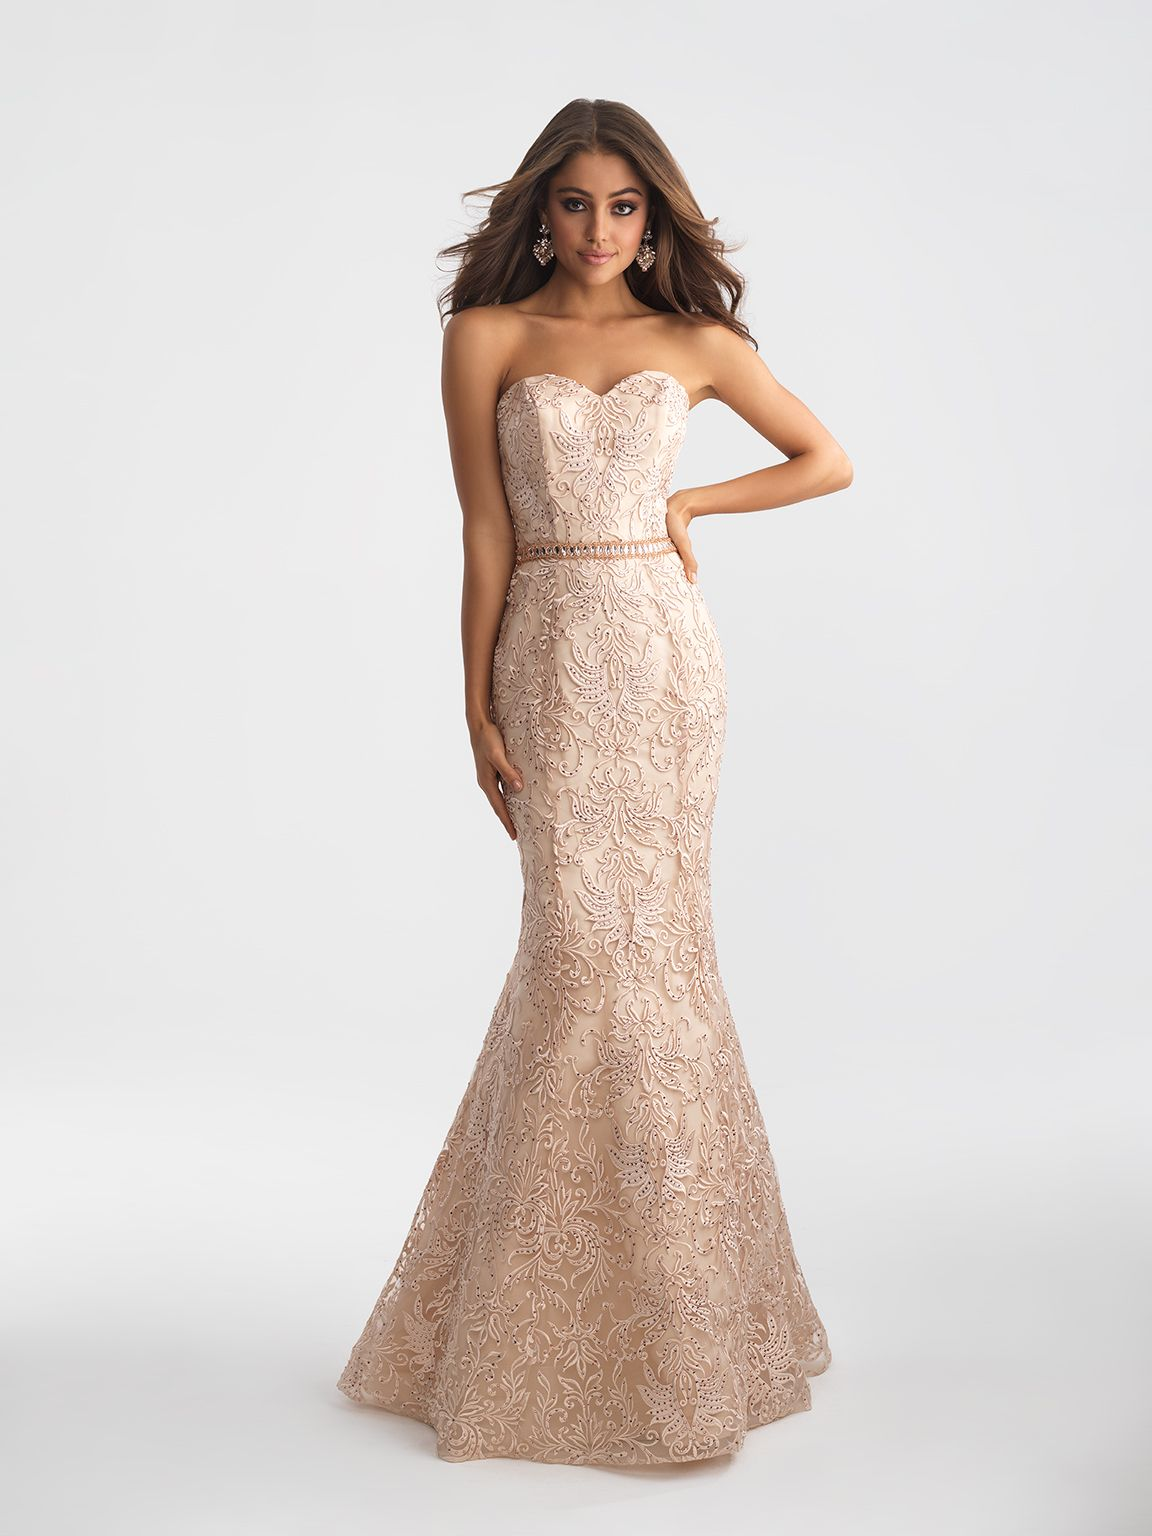 71314 Evening Gowns / Dresses Net with Beaded and